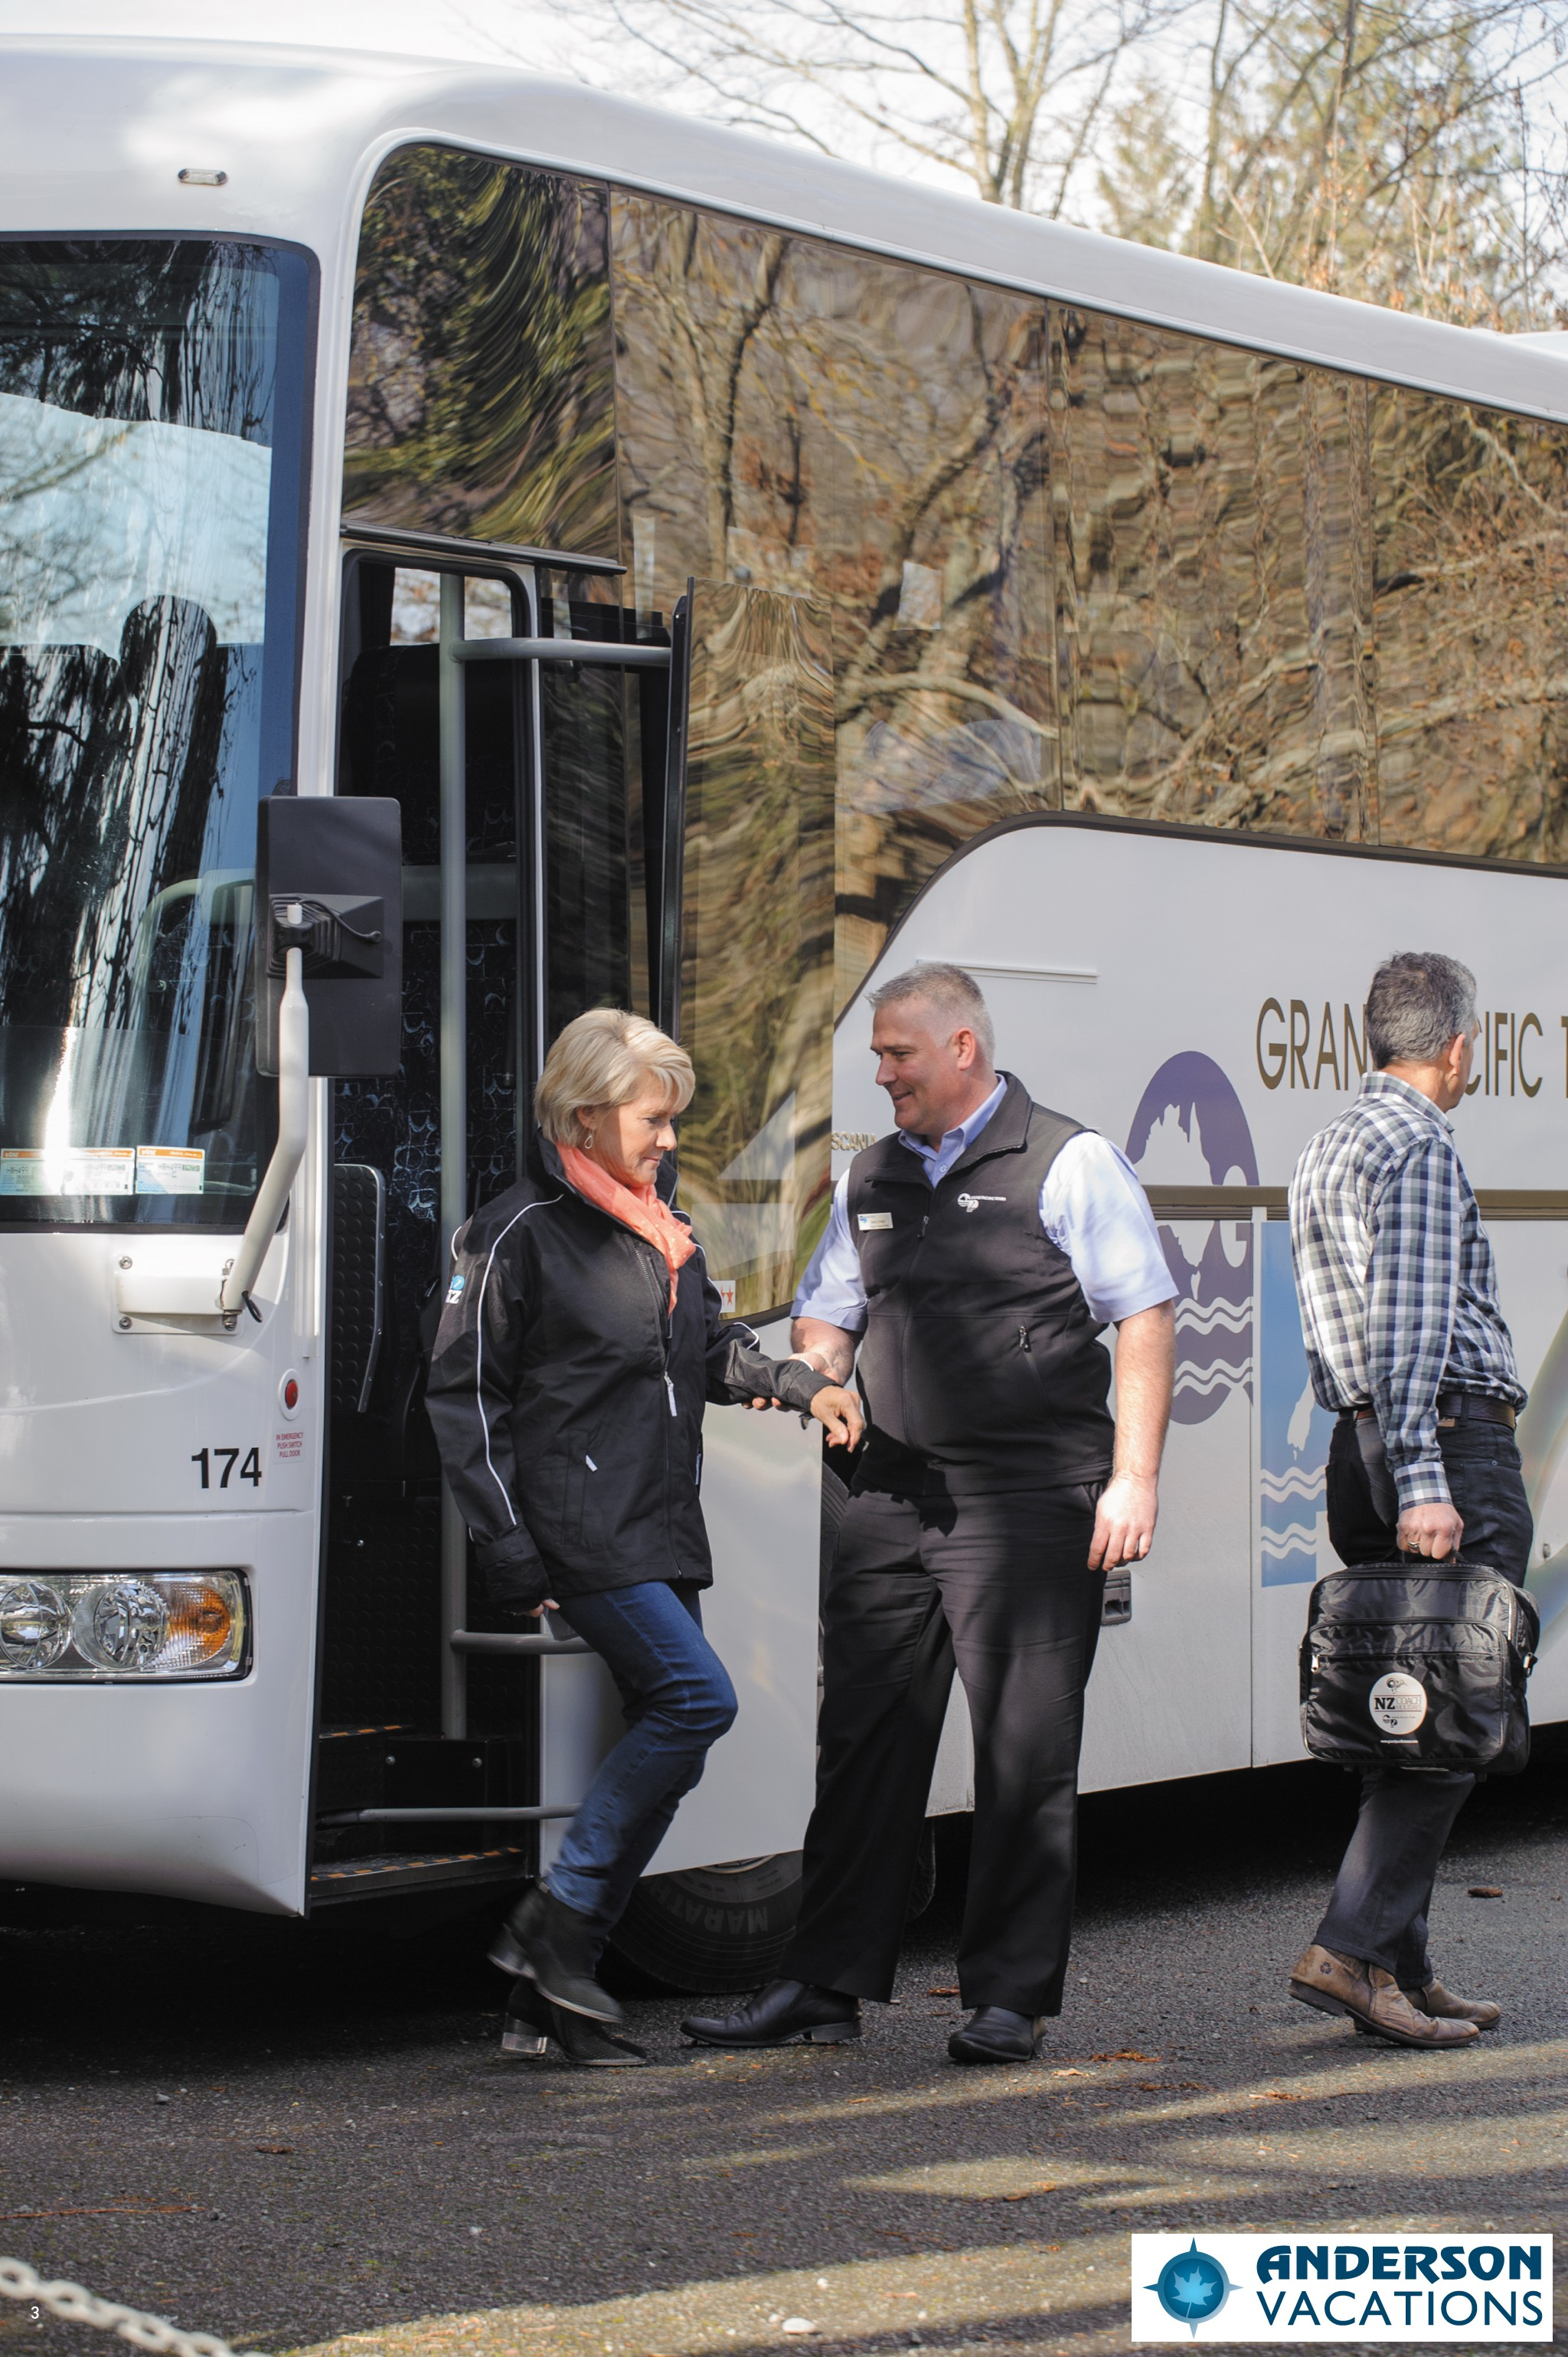 GPT Coach Touring